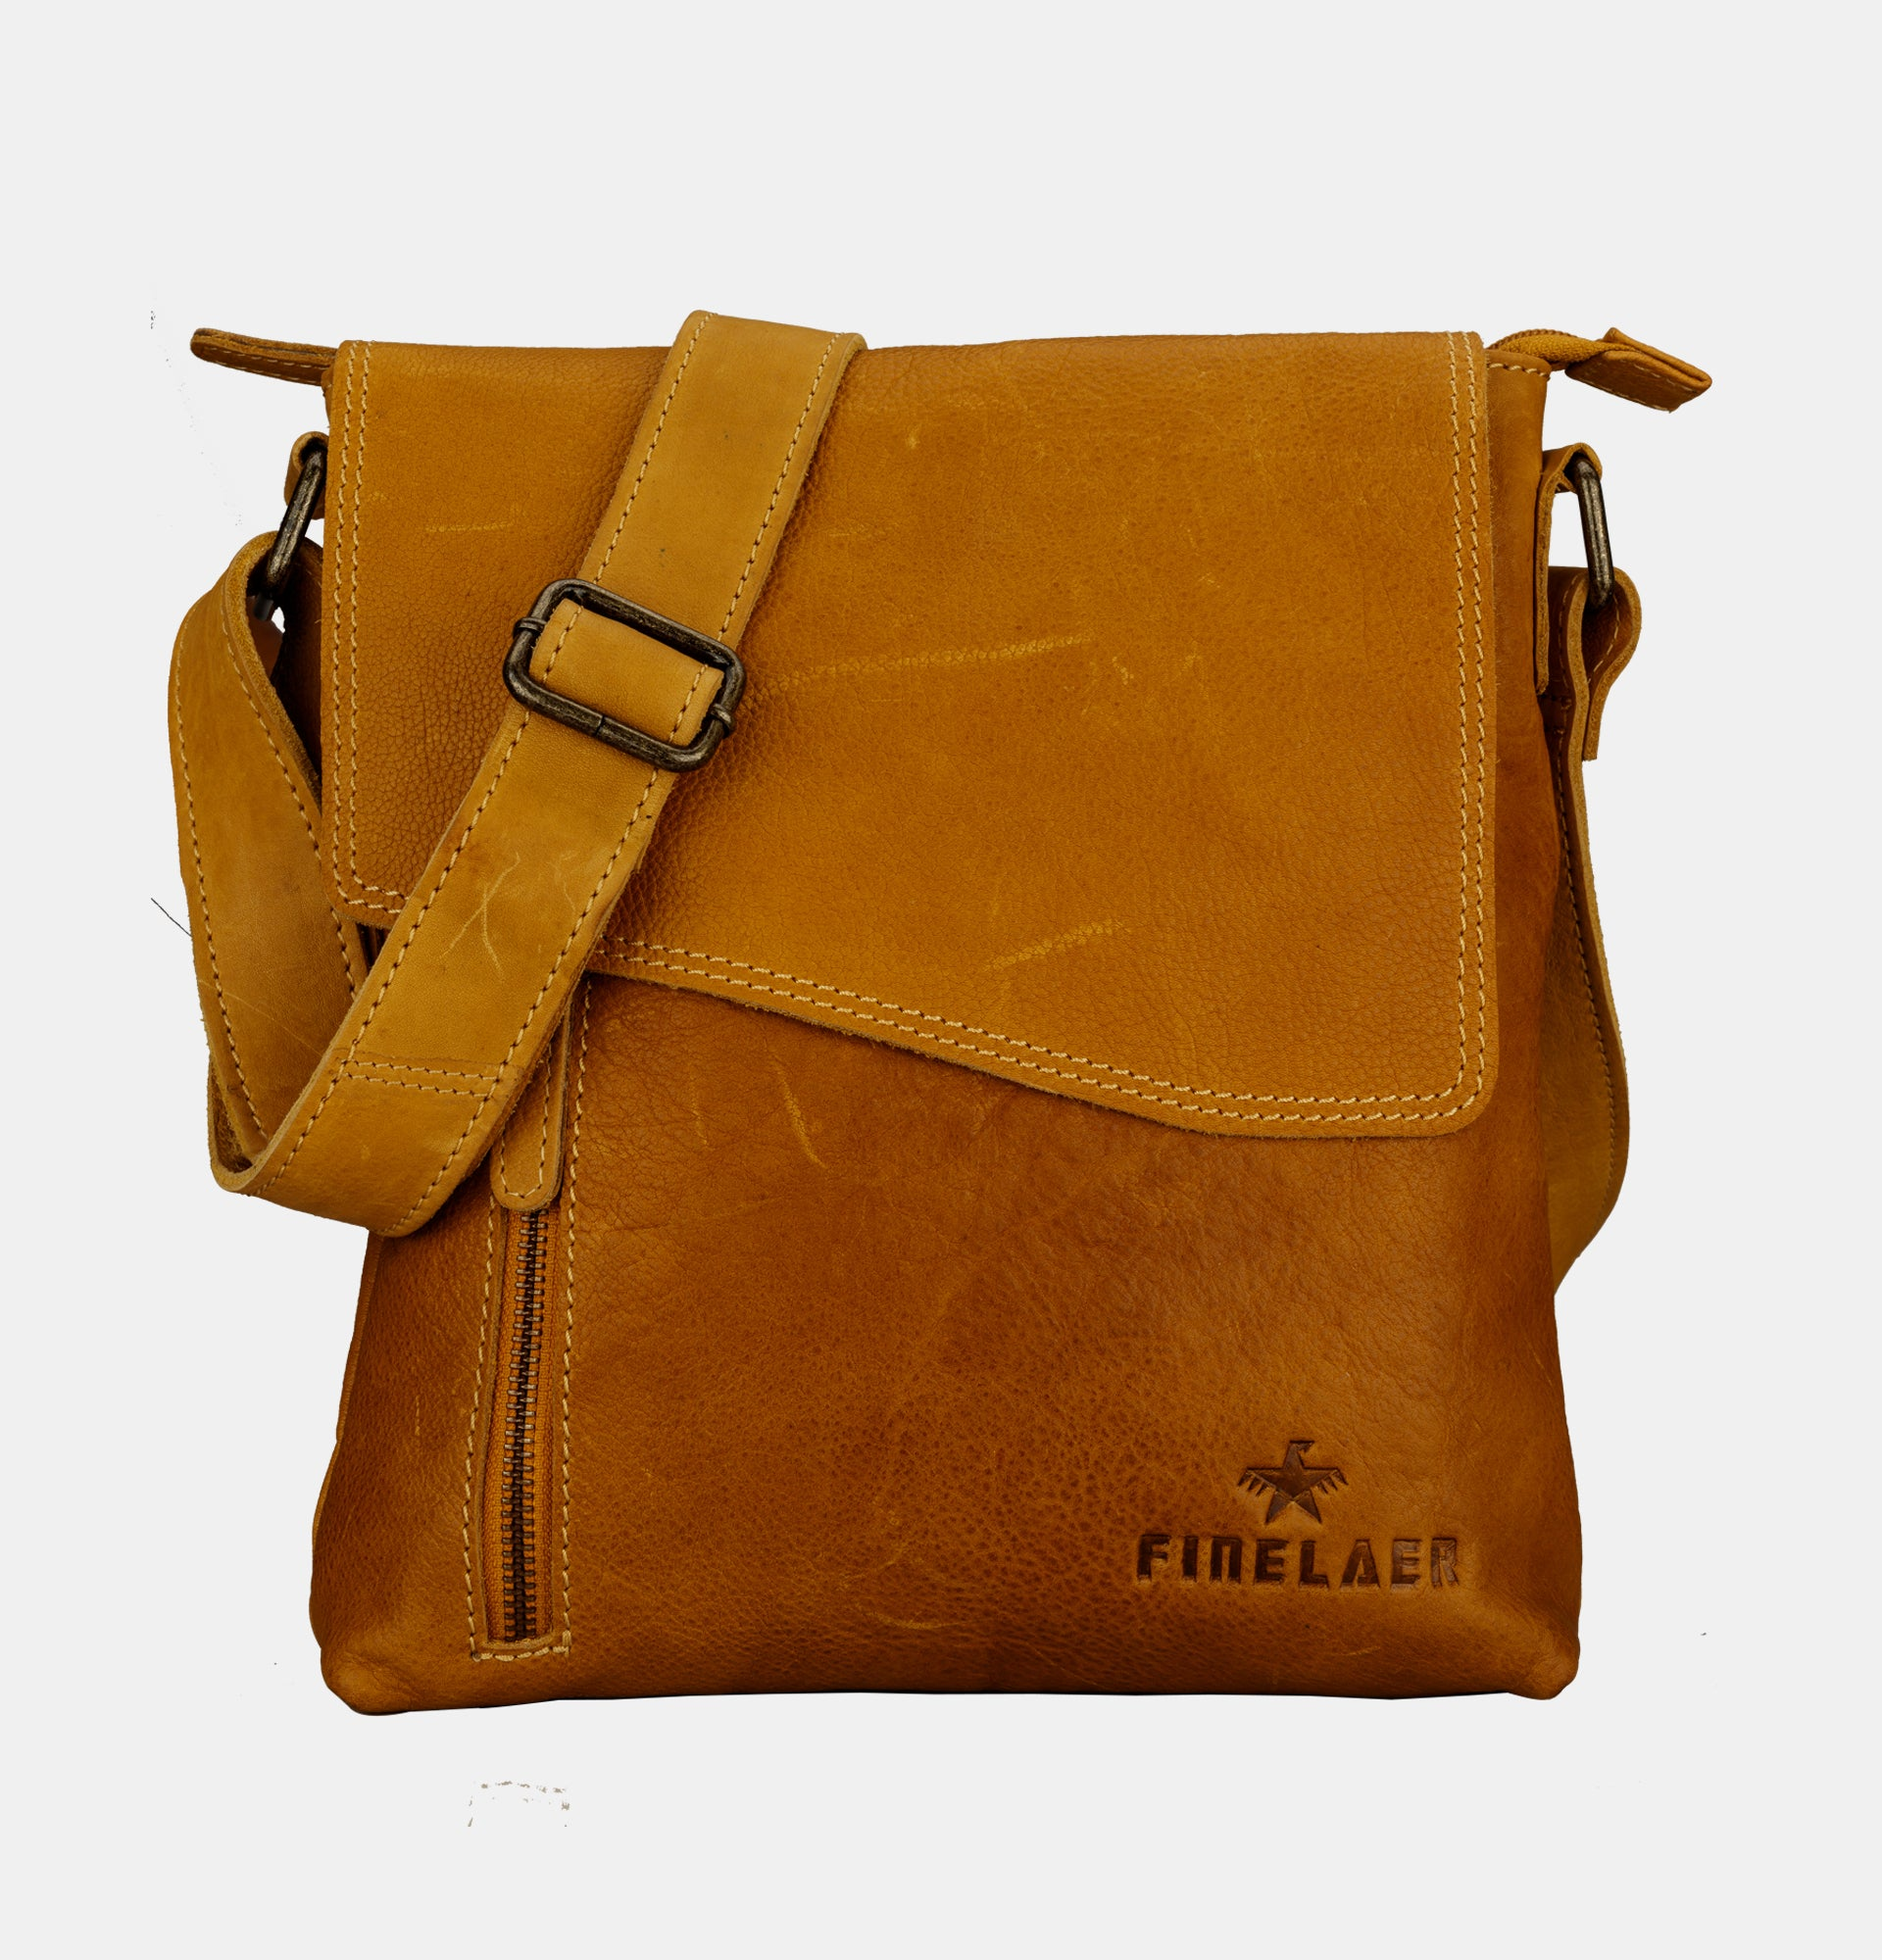 b1cfeef5e0c9 Finelaer Vintage Handmade Leather Crossover Crossbody Bag